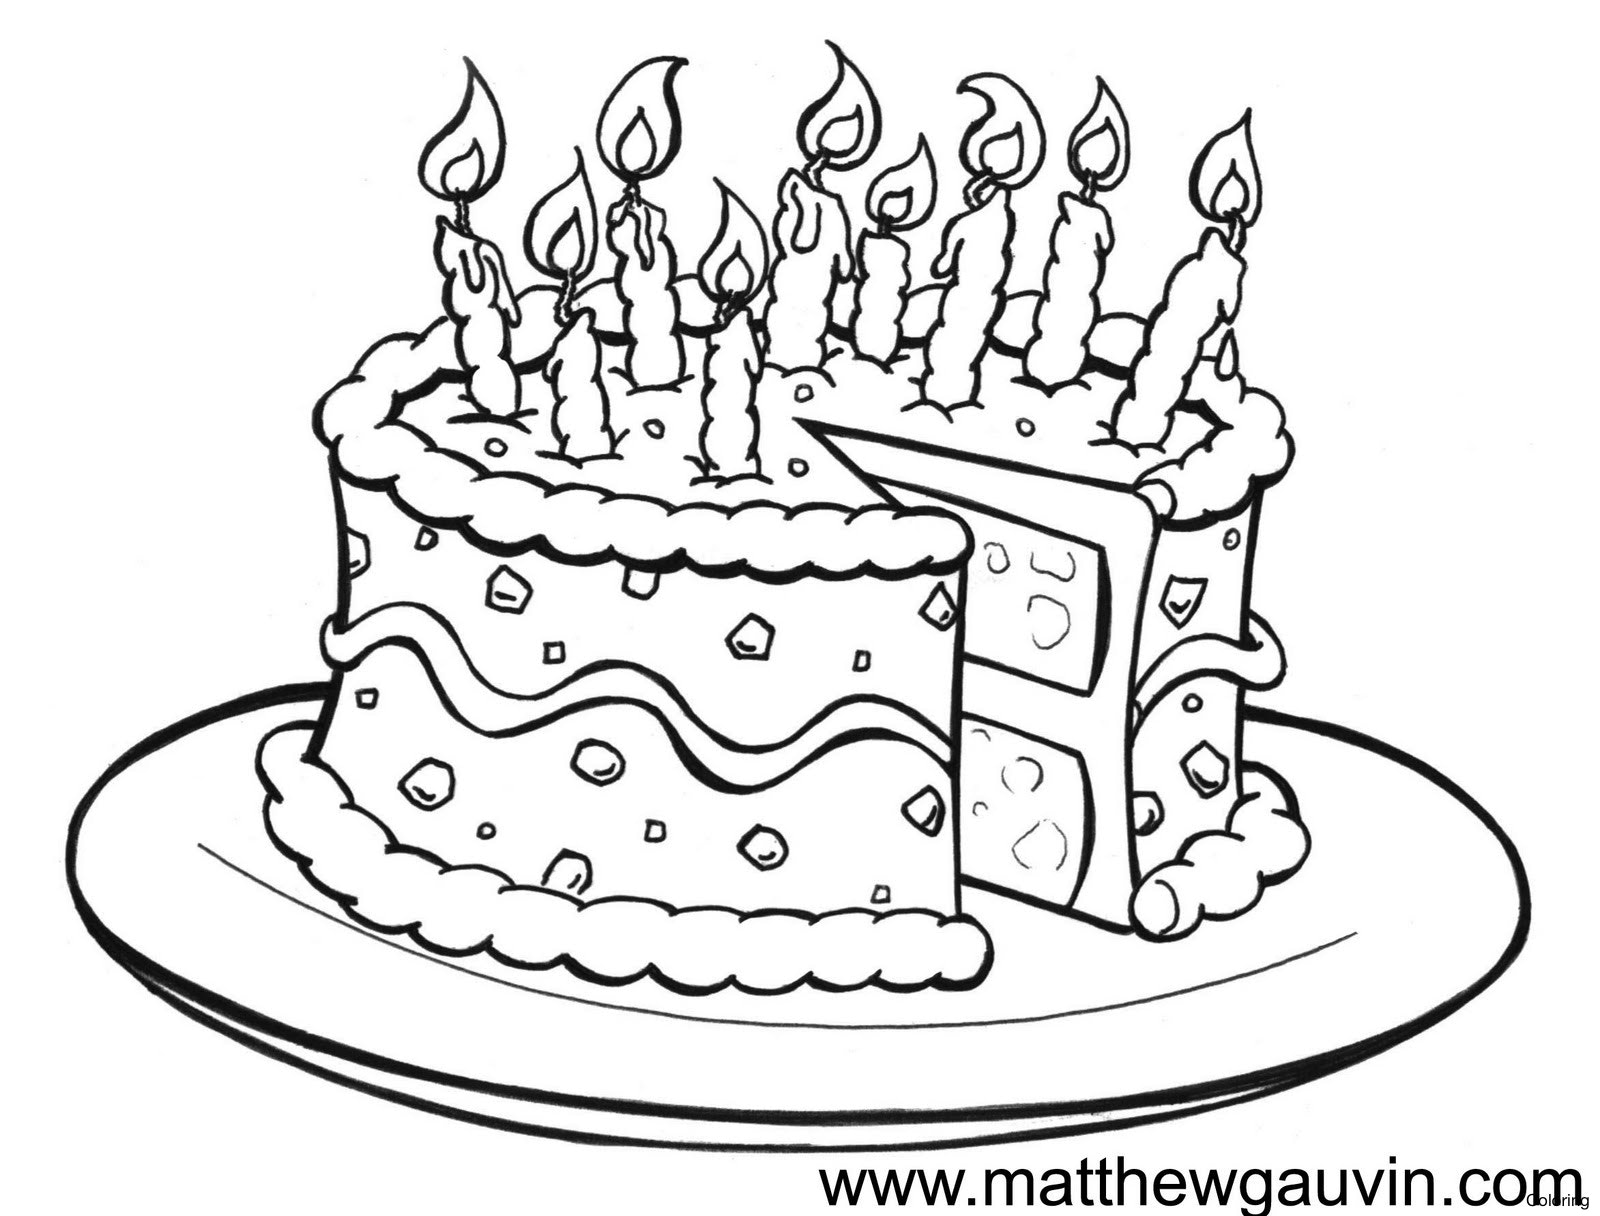 1600x1216 Maxresdefault How To Draw A Cake Coloring Birthday Easy Step By